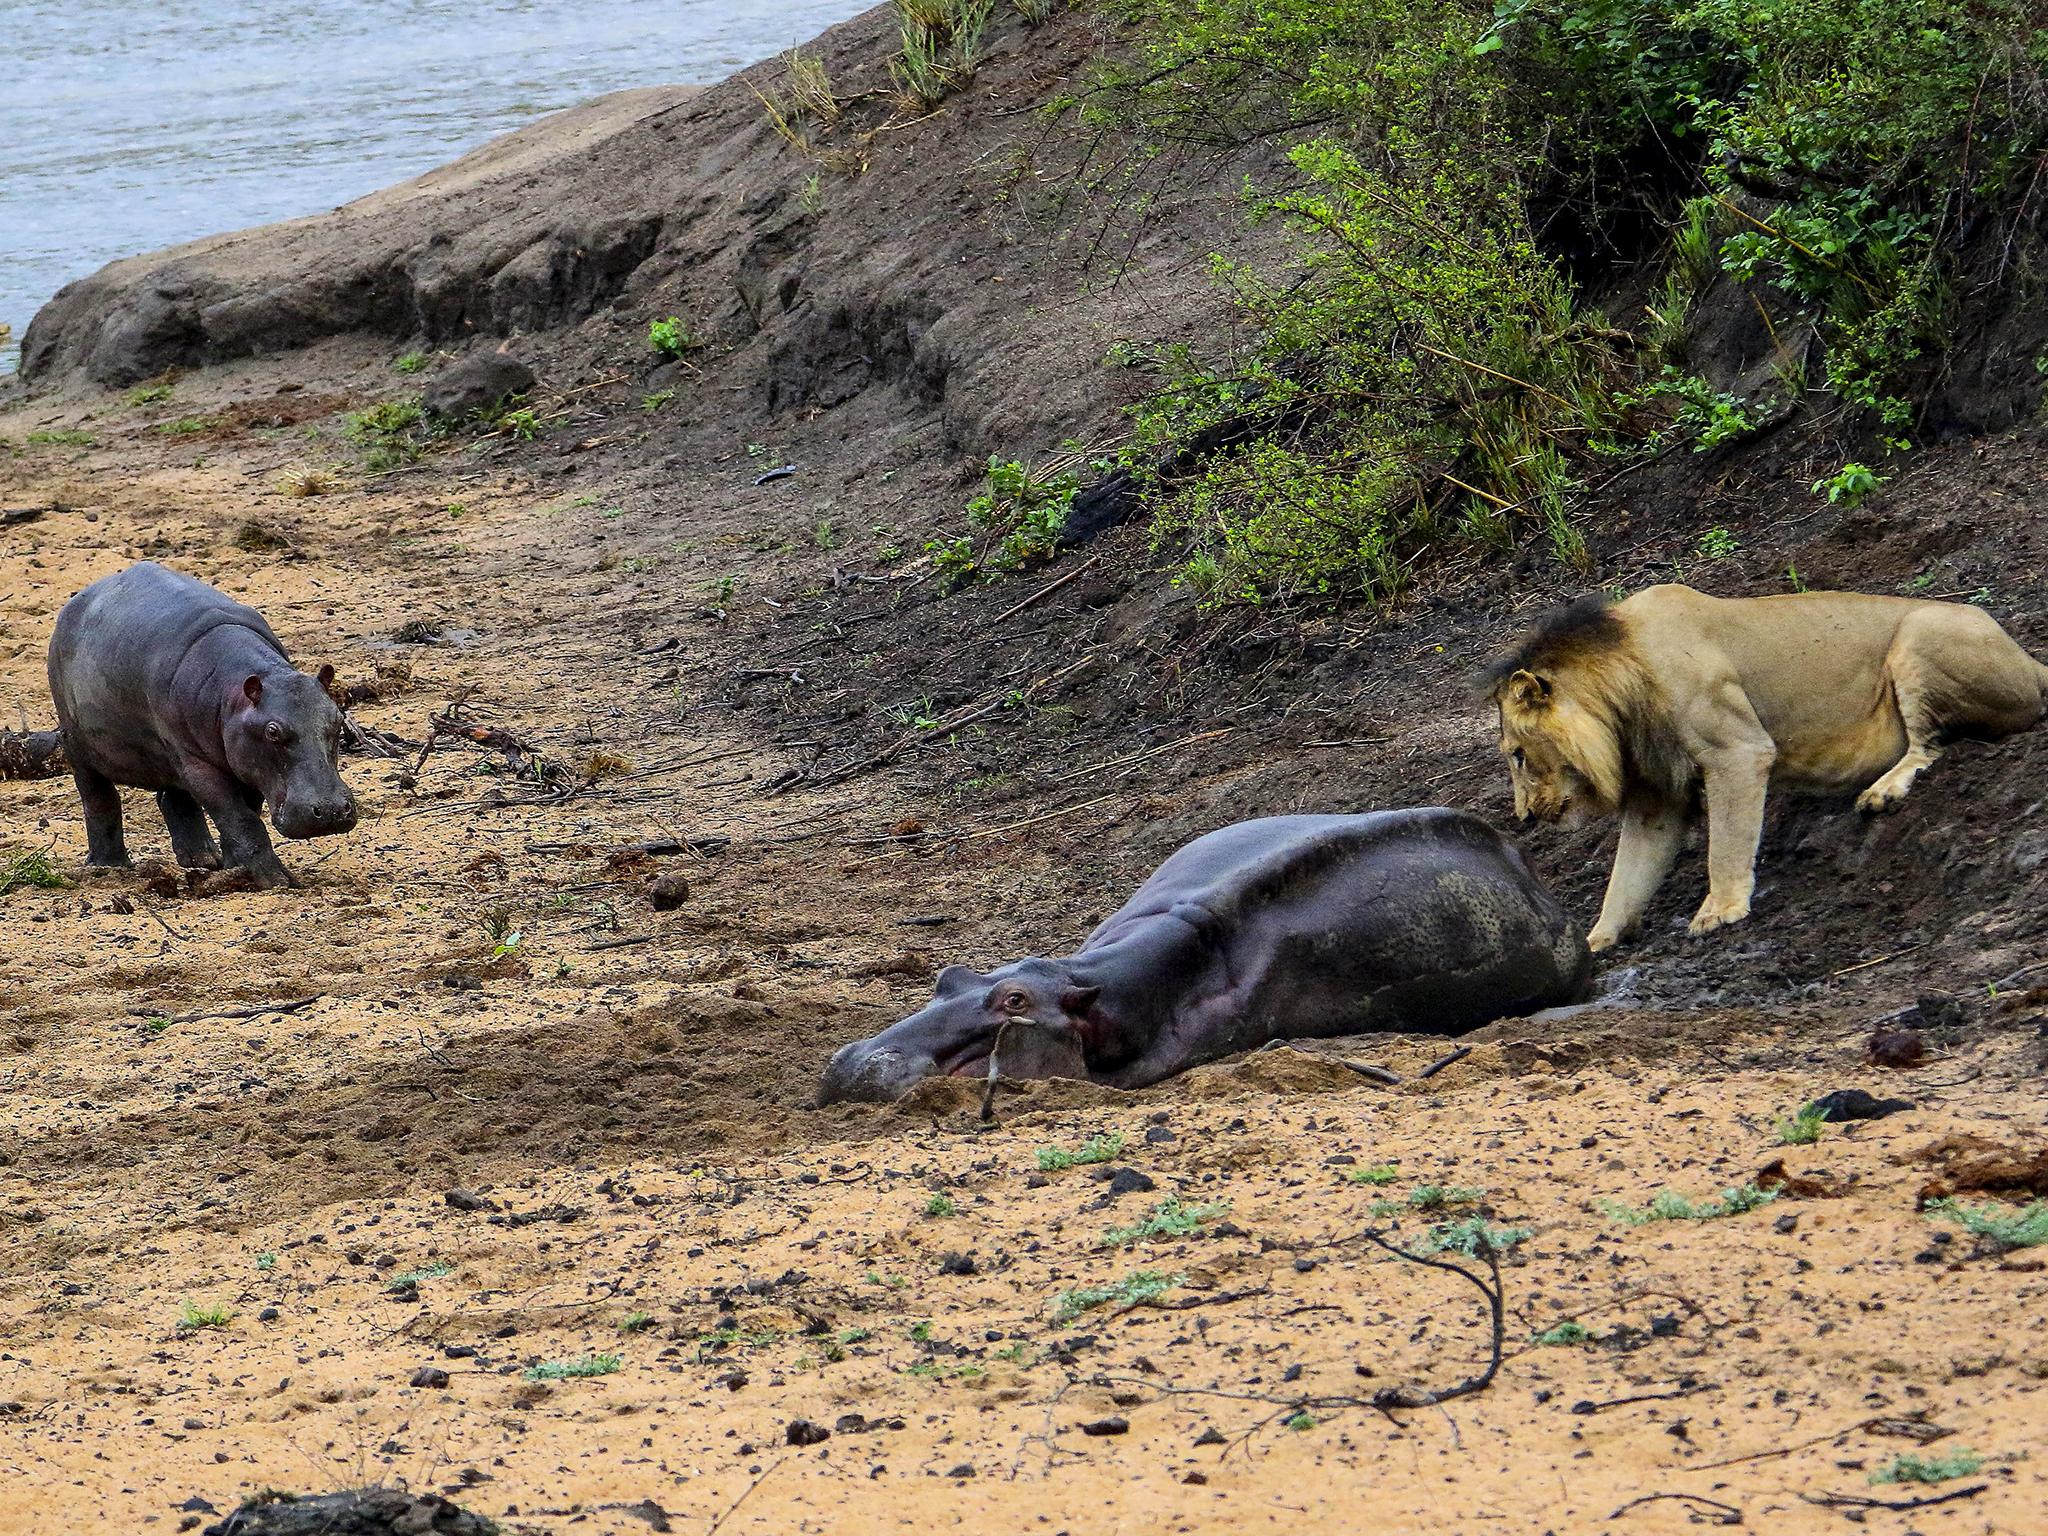 Baby hippo attacks hungry lion in attempt to save mother